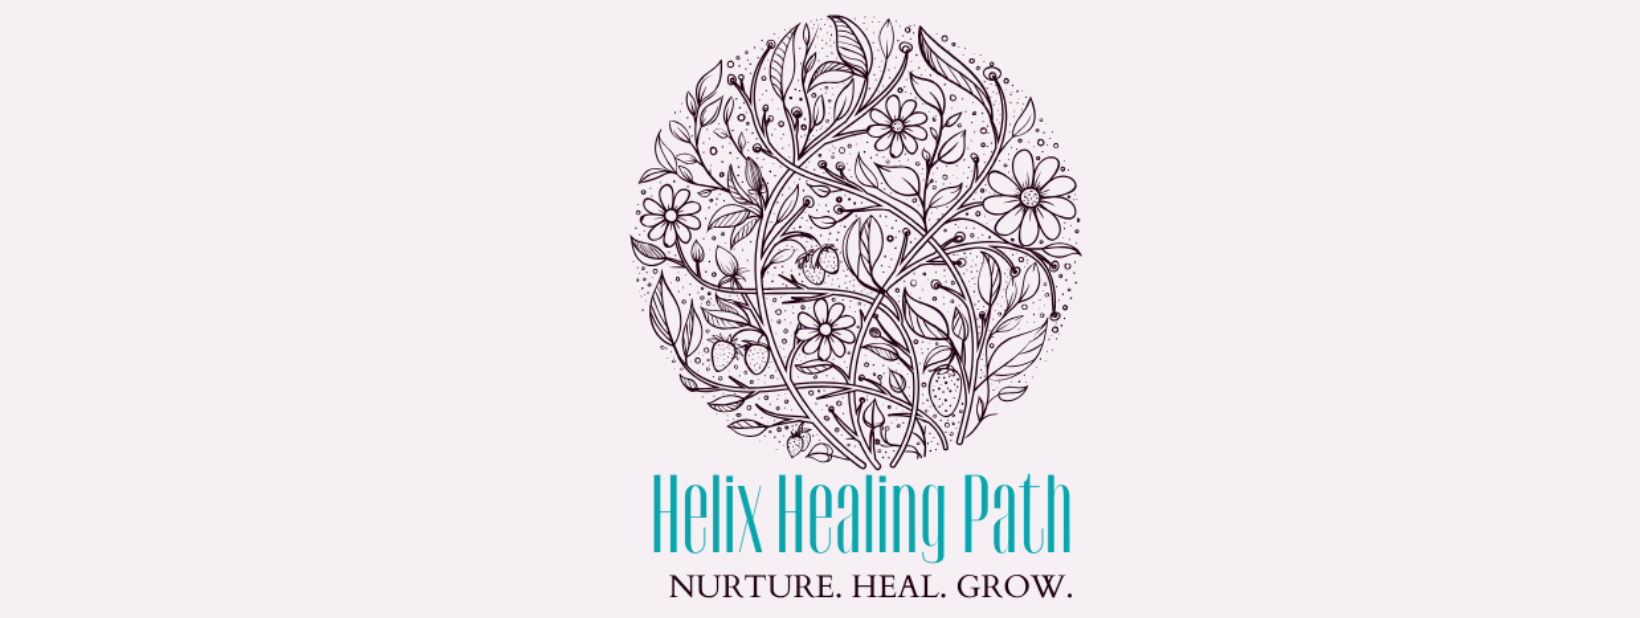 Helix Healing Path, LLC